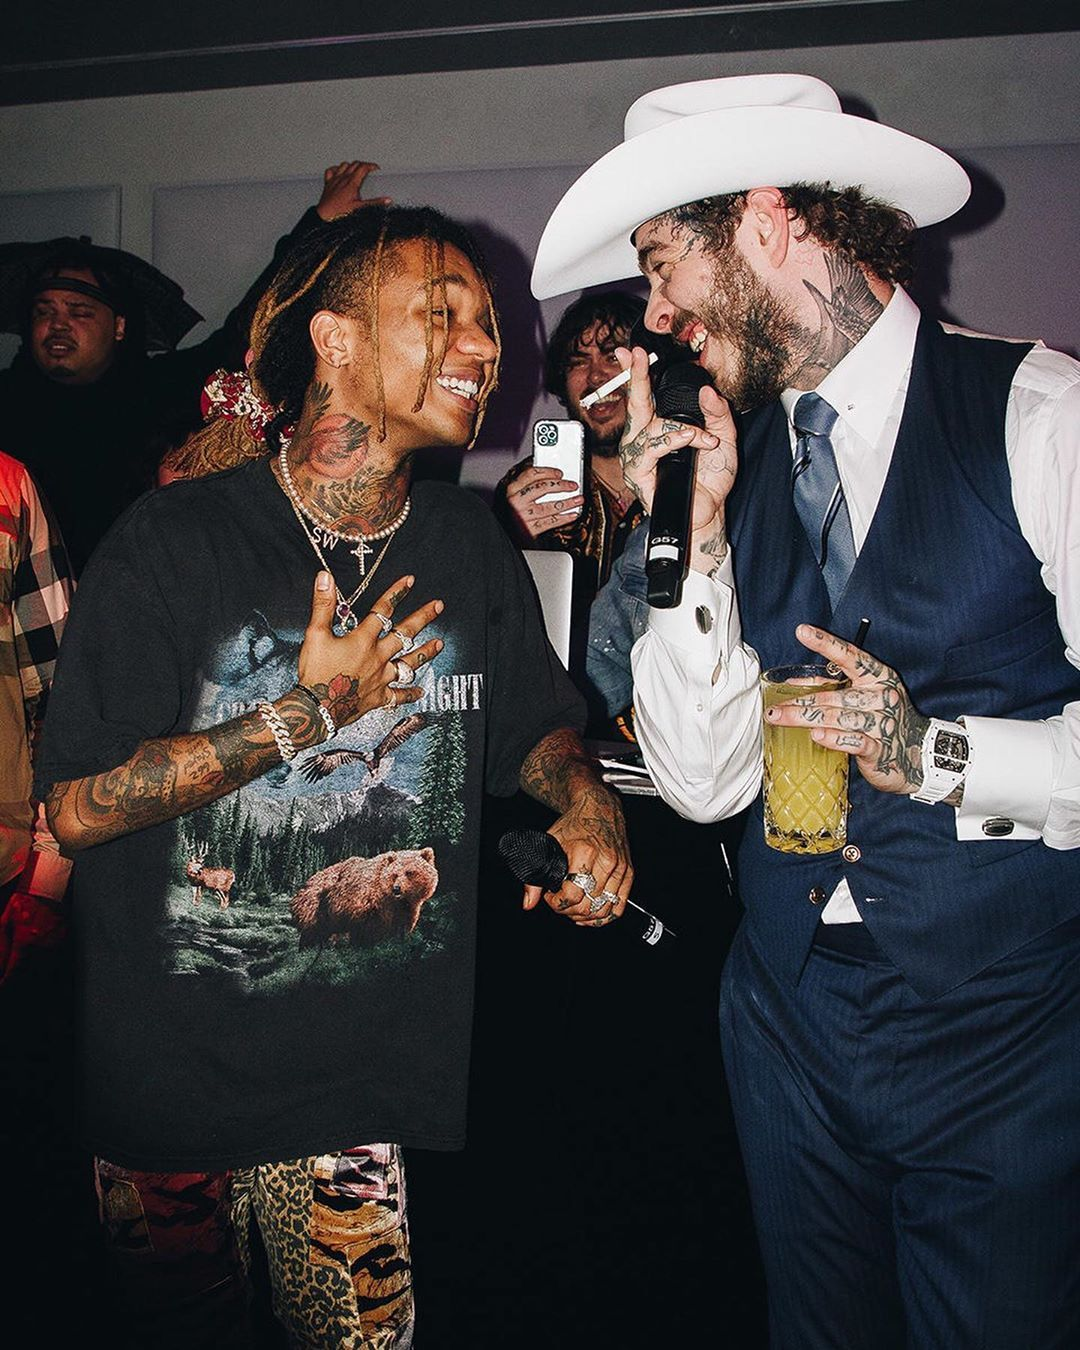 24 2k Likes 73 Comments Gq Gq On Instagram Last Night In West Hollywood We Celebrated Our Gqmoty Issue With A Hip Hop Artists Post Malone Good Music